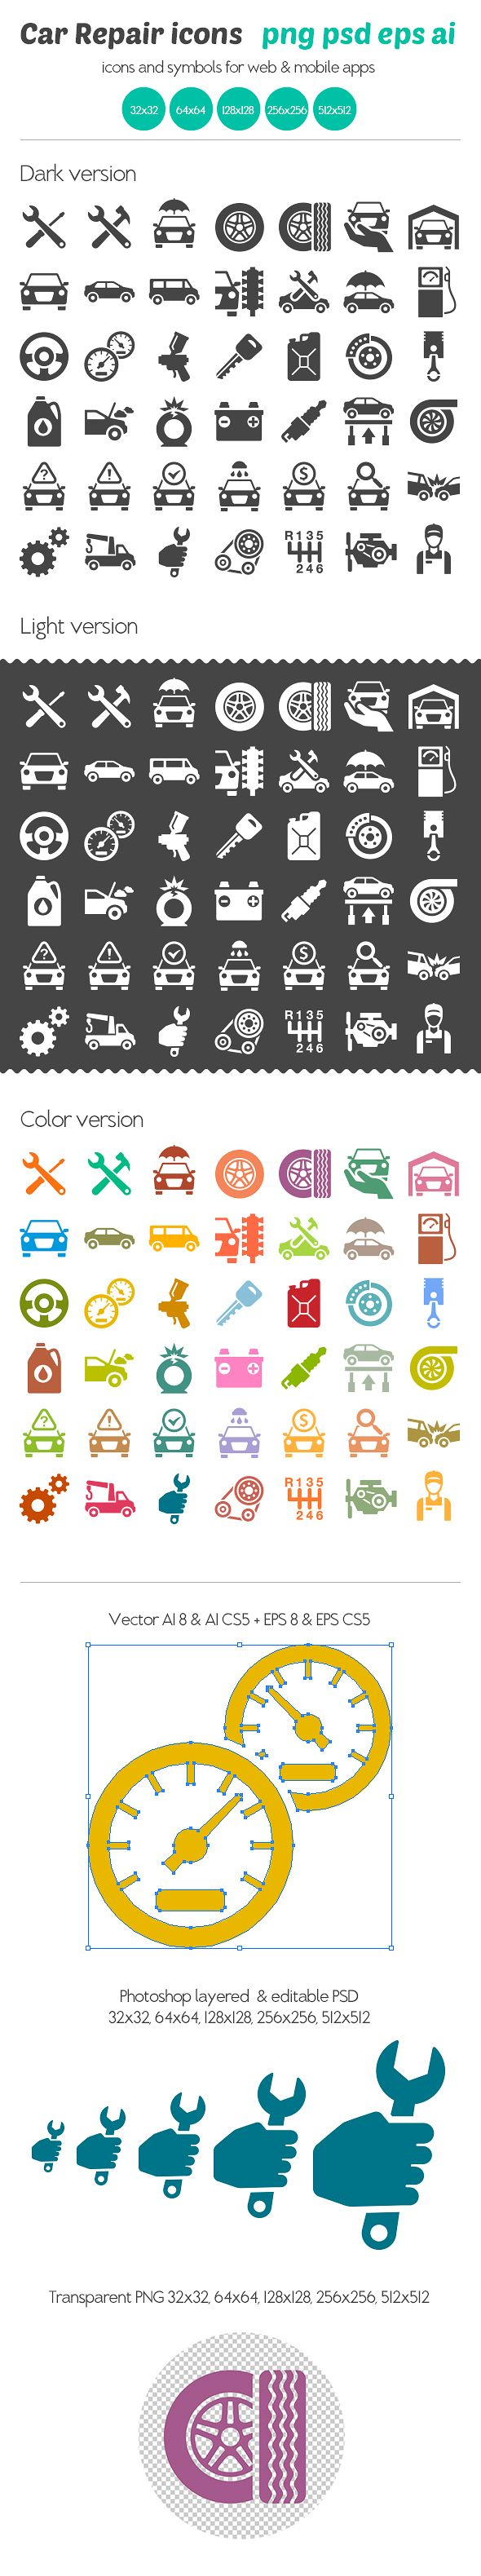 Car Repair Icons by Ottoson, via Behance